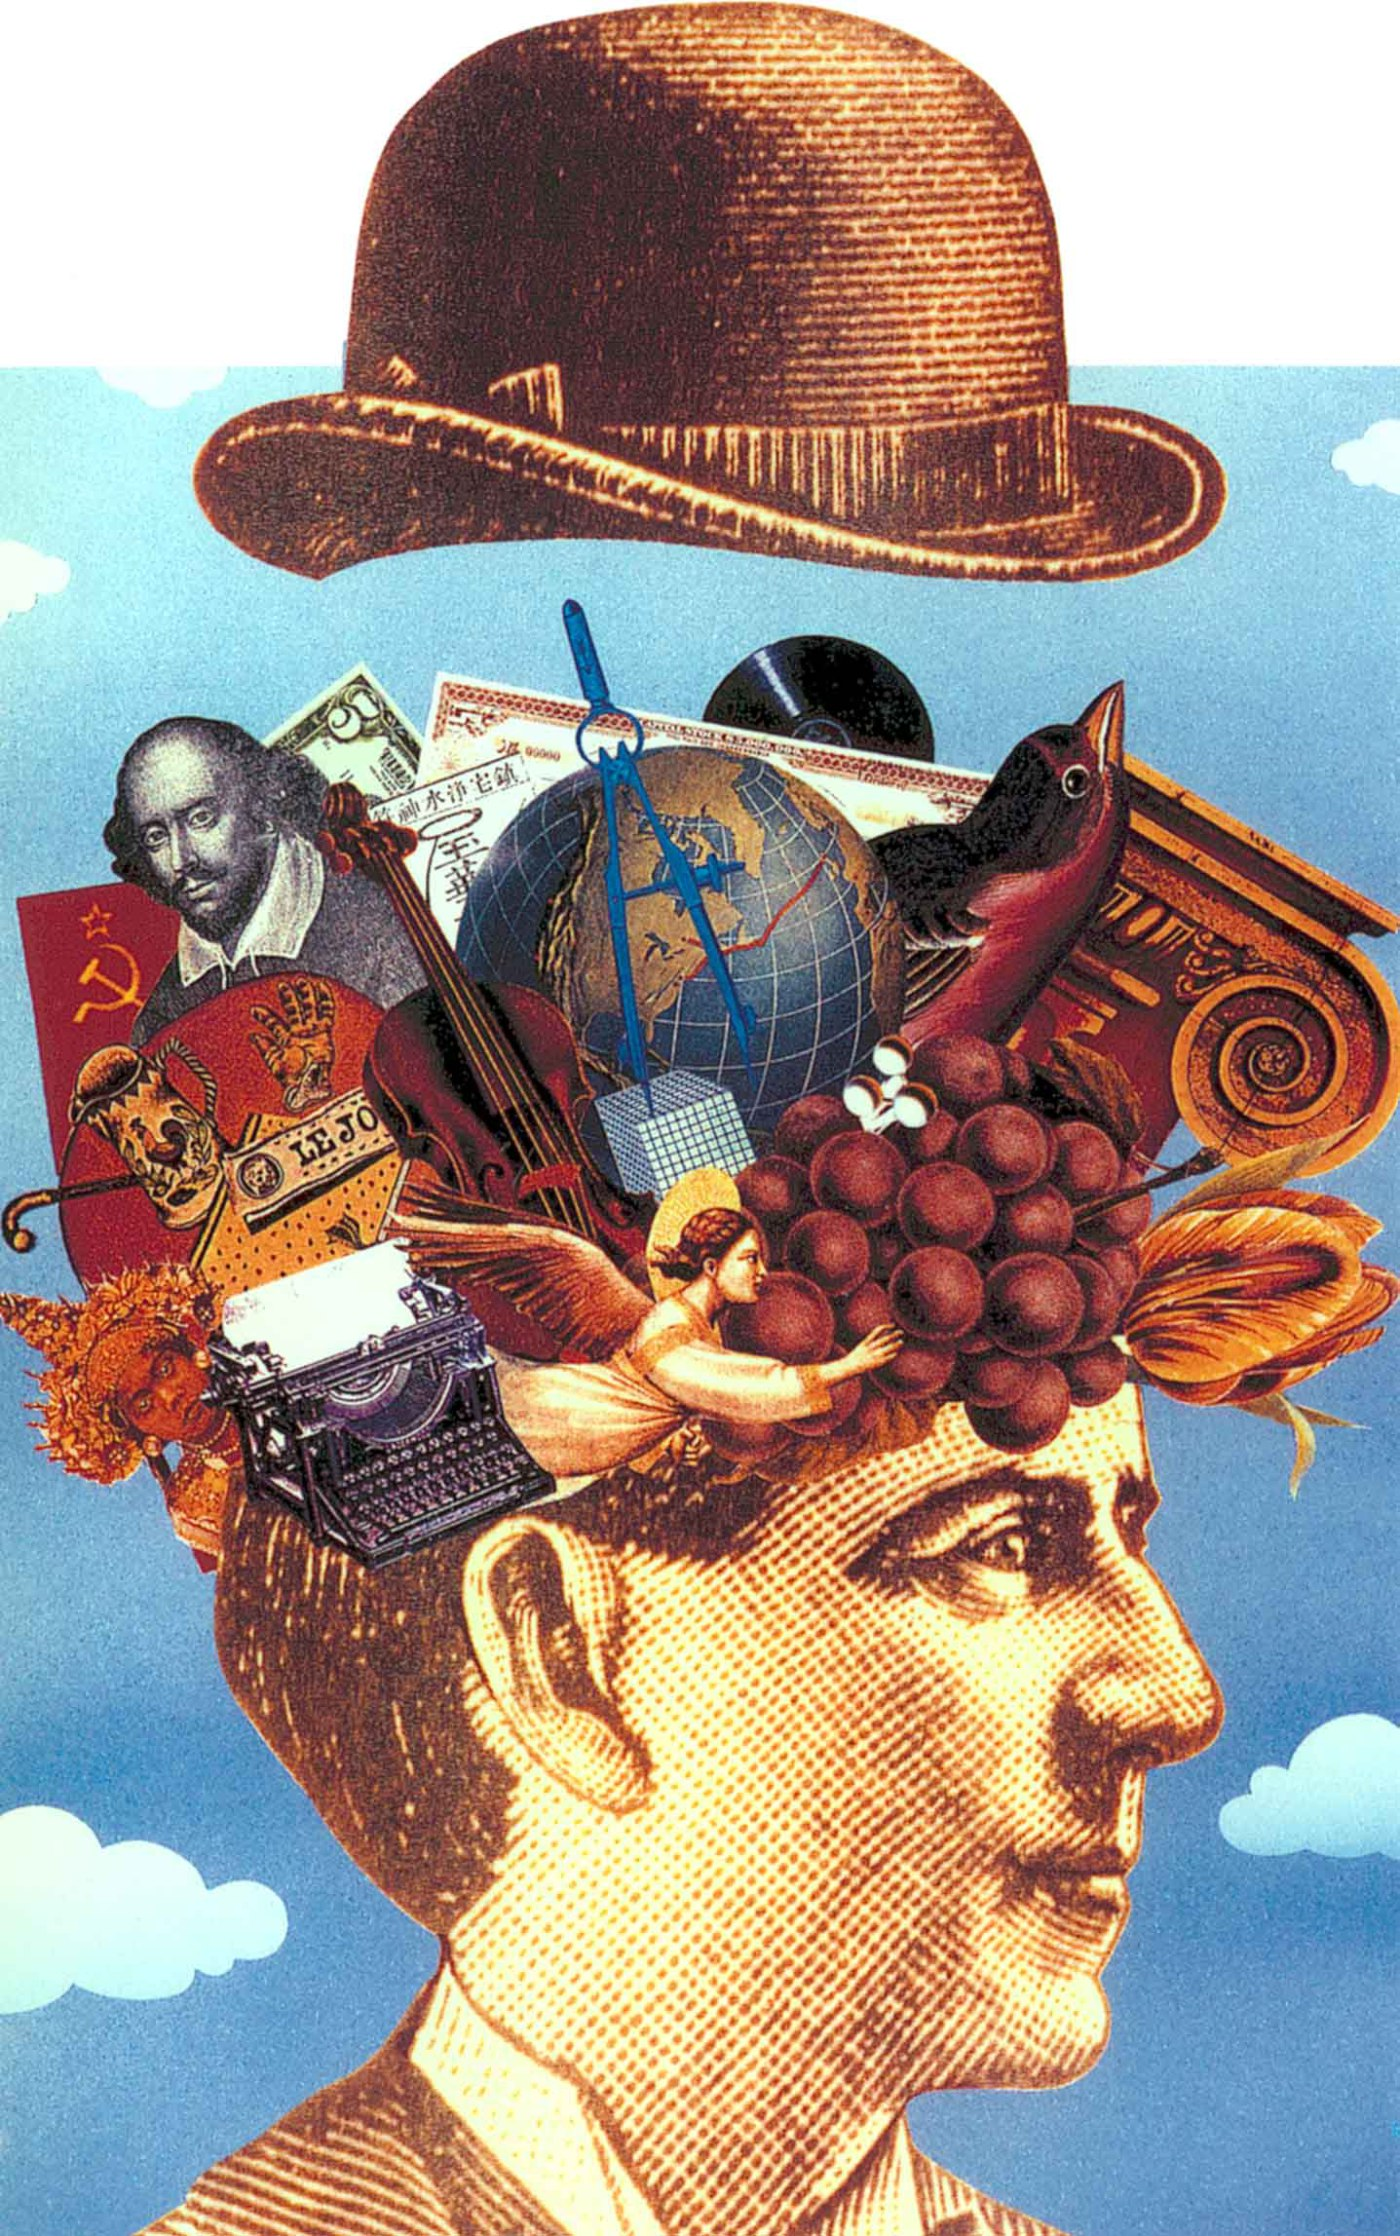 collage-illustrations-by-melissa-grimes_110115_14